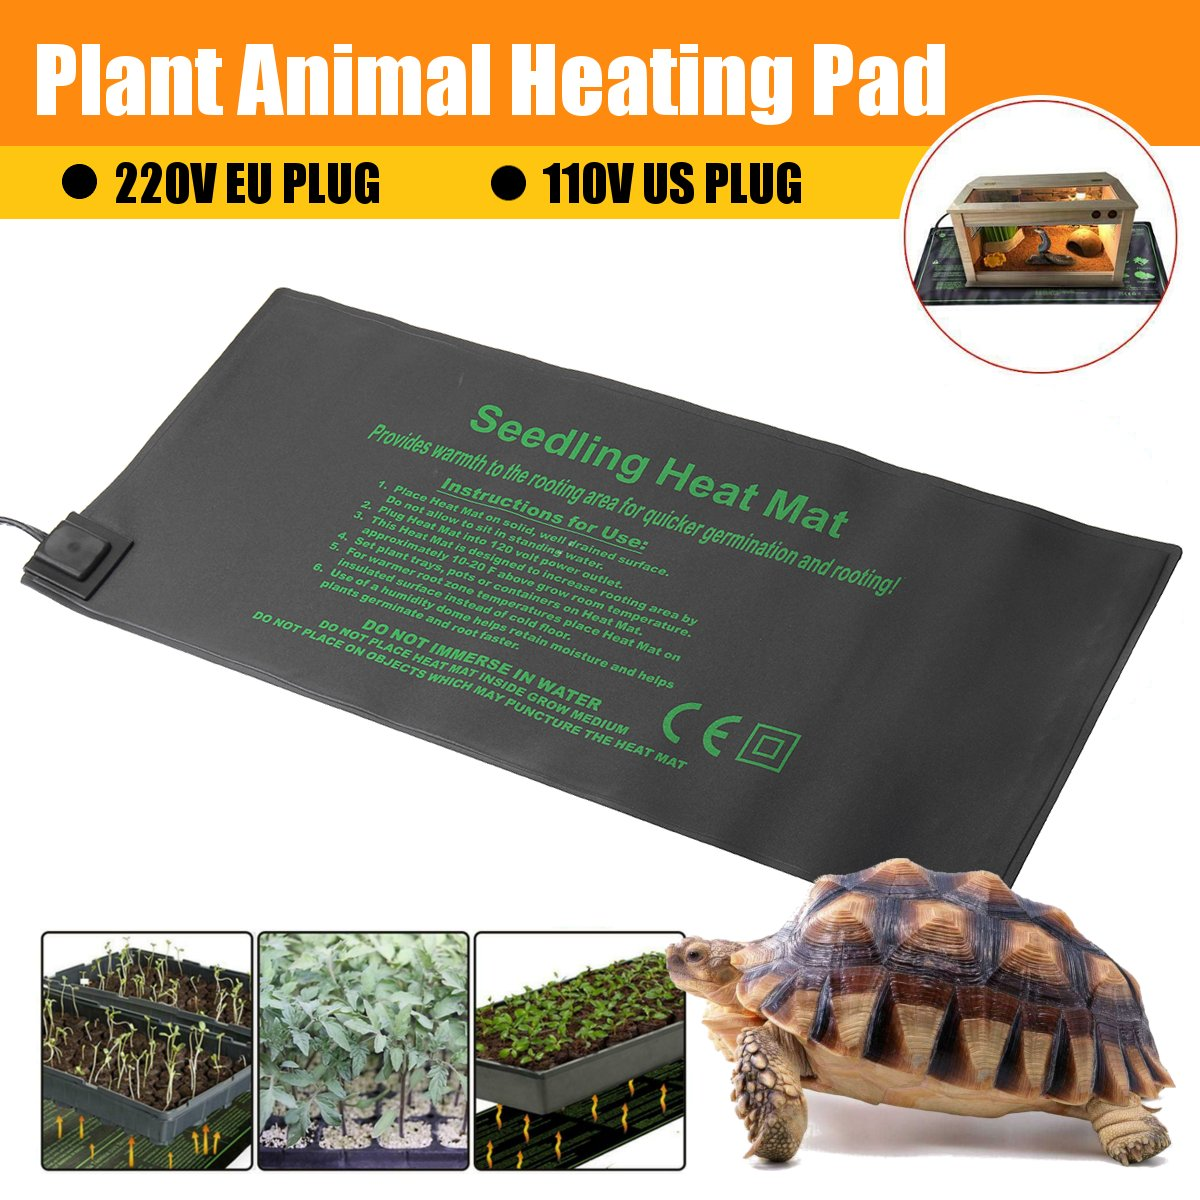 Seedling Heating Mat 52x24cm Waterproof Plant Seed Germination Propagation Clone Starter Pad Garden Supplies Pet Retile Warm Pad